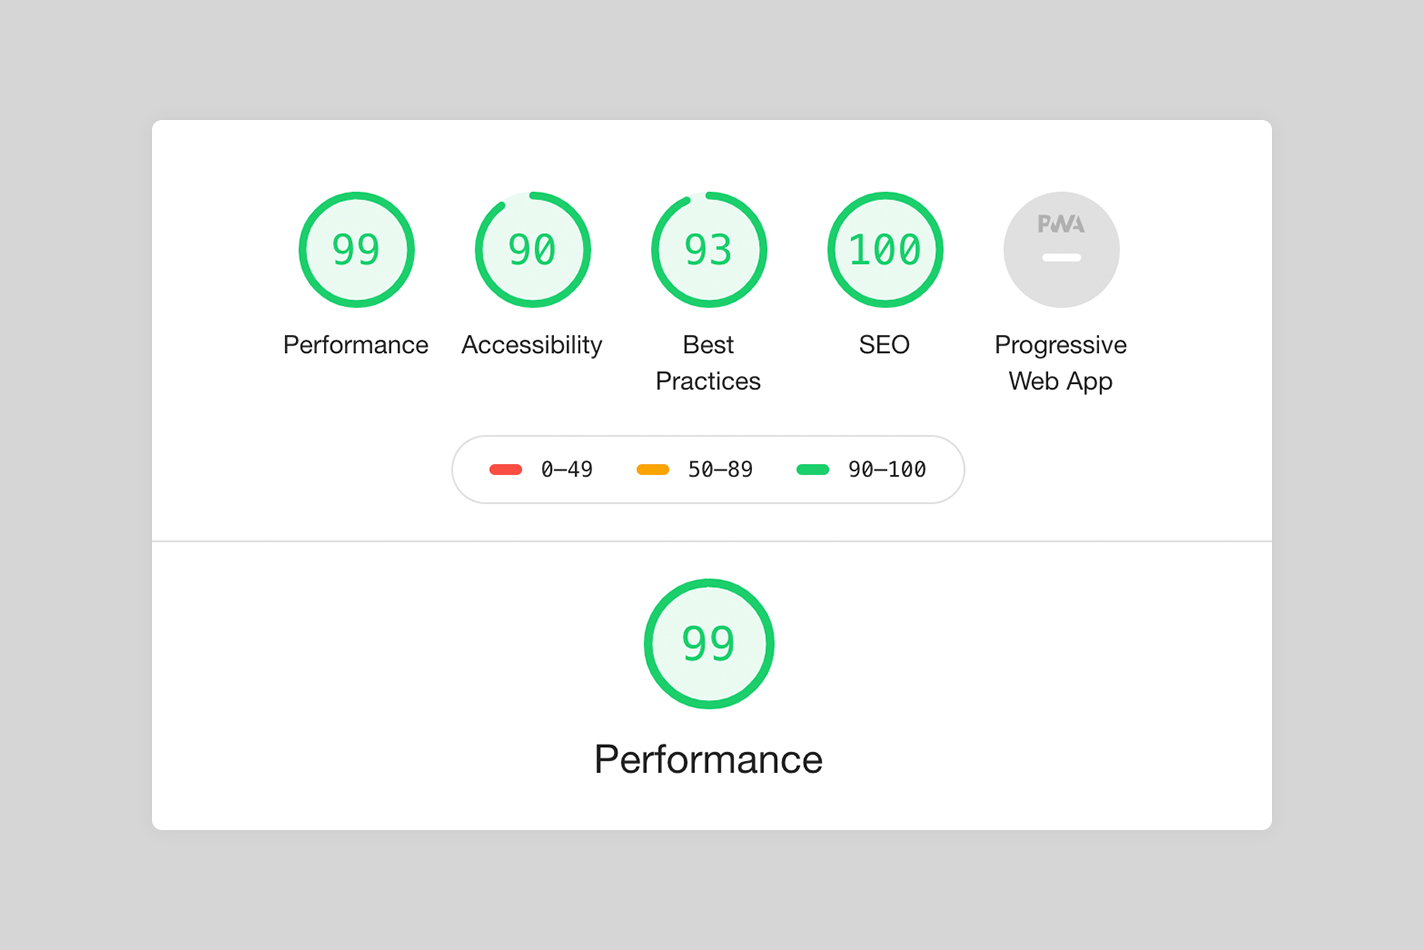 Performance Scores For Ecommerce PWA